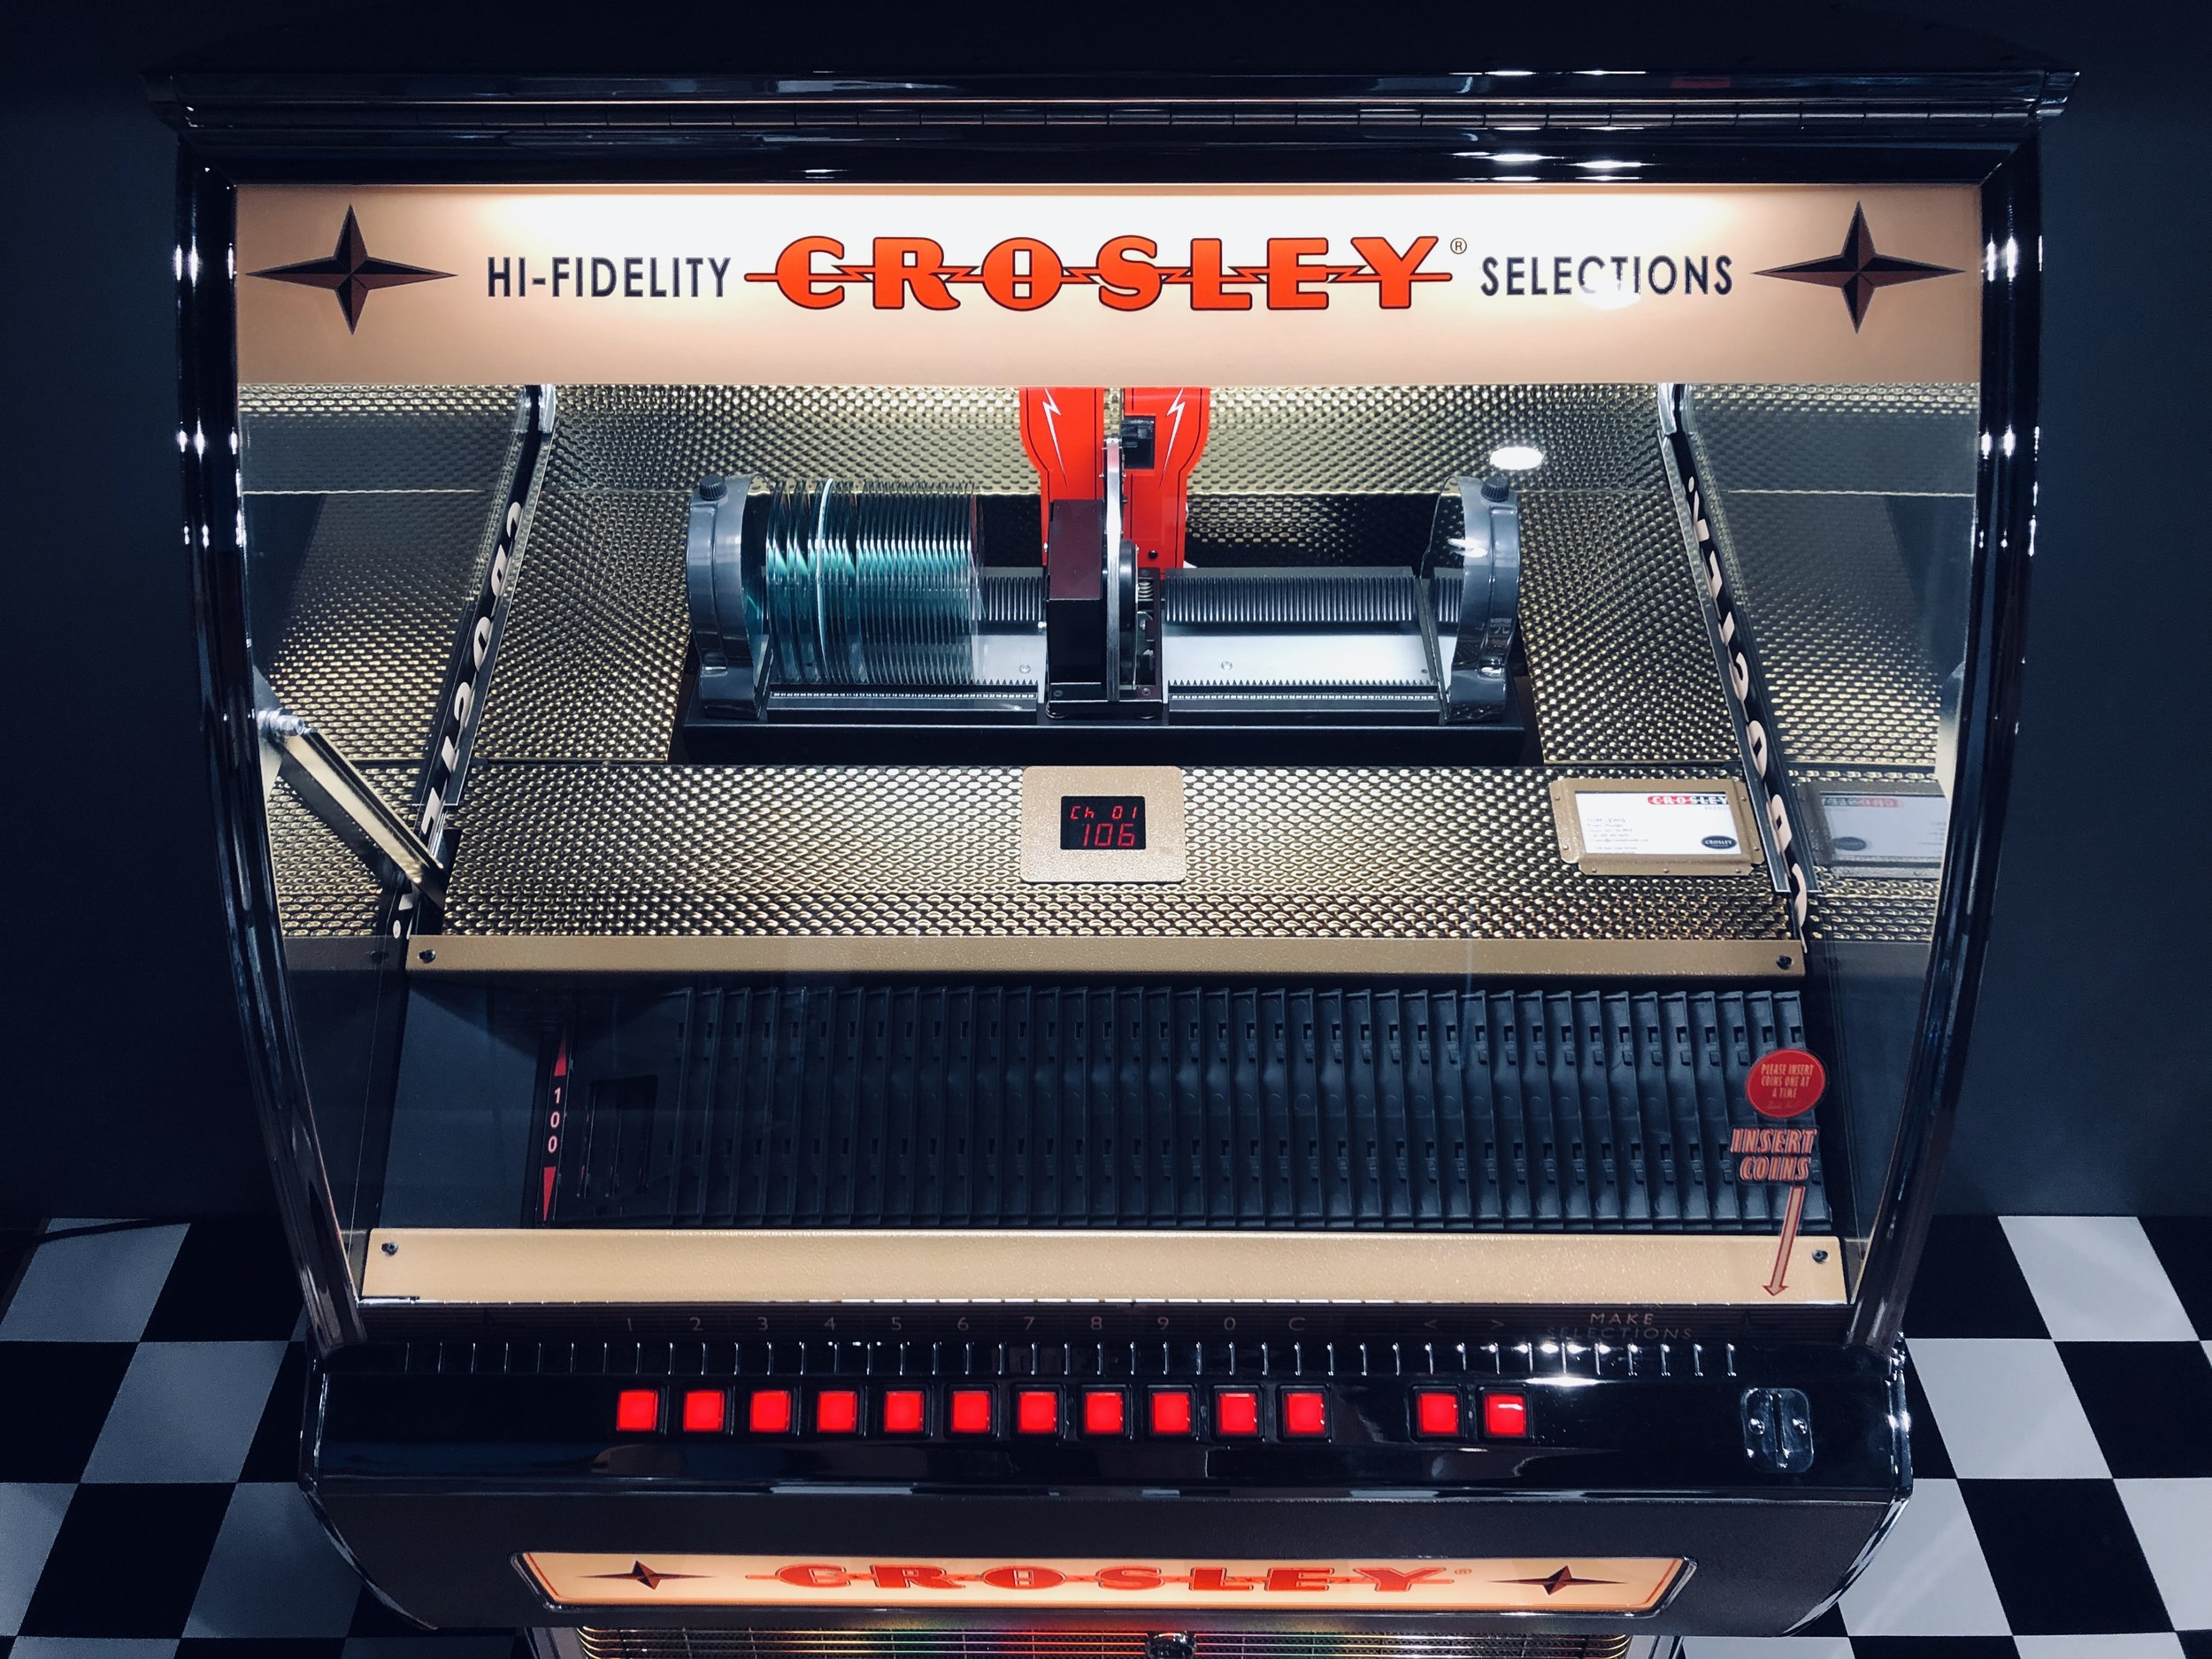 Crosley jukebox.